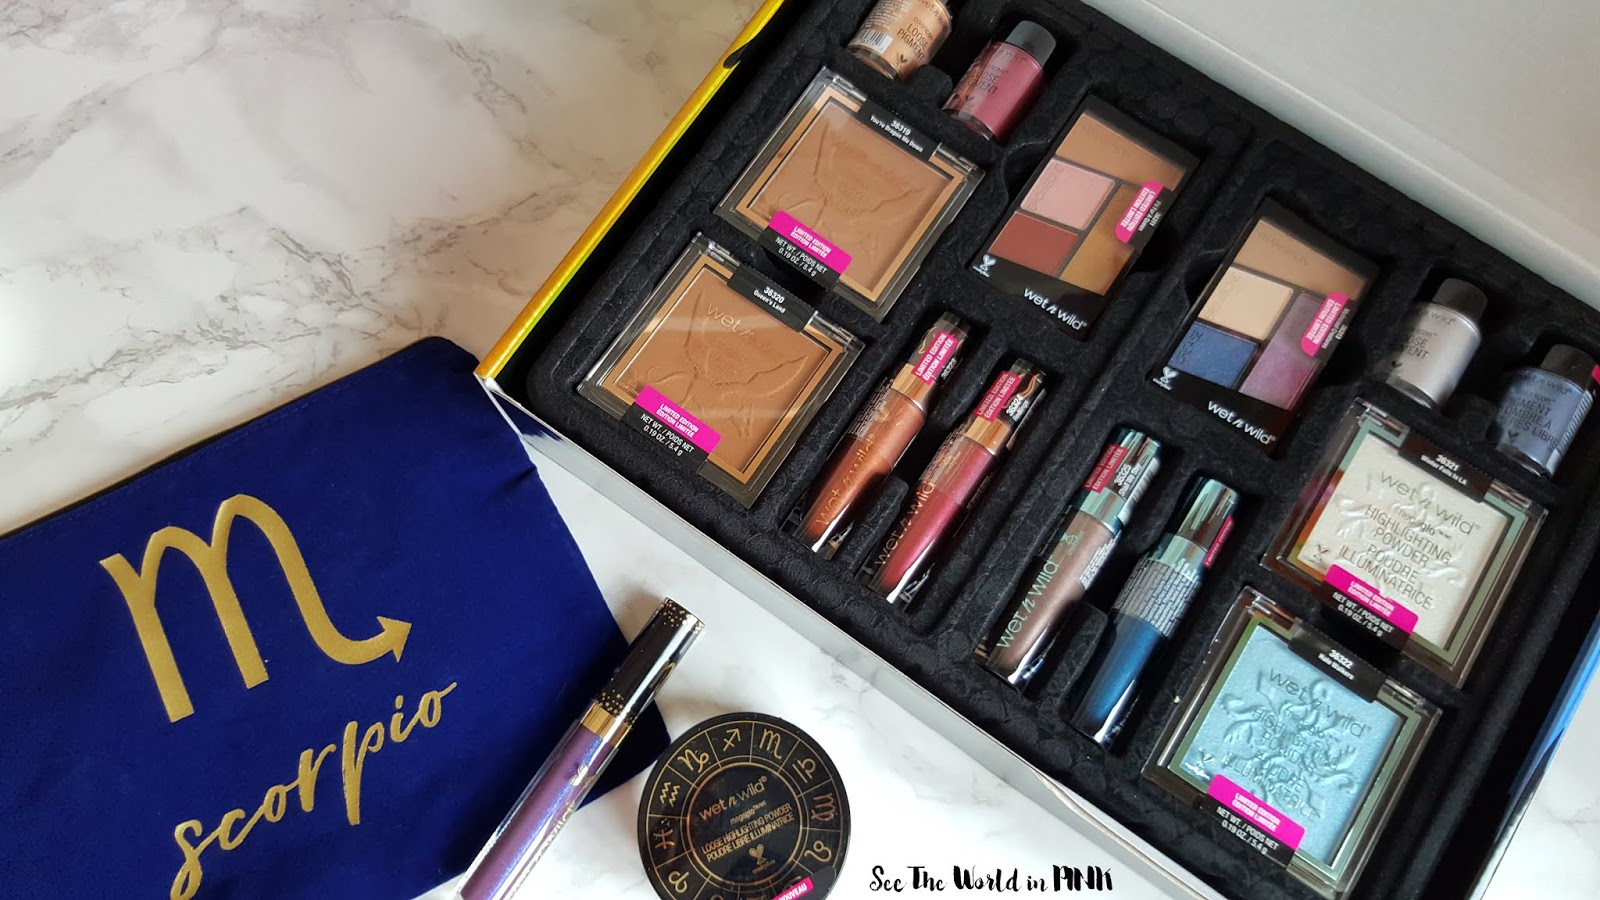 Wet n' Wild Introduces The Zodiac Collection Wet n' Wild Introduces The Zodiac Collection new picture